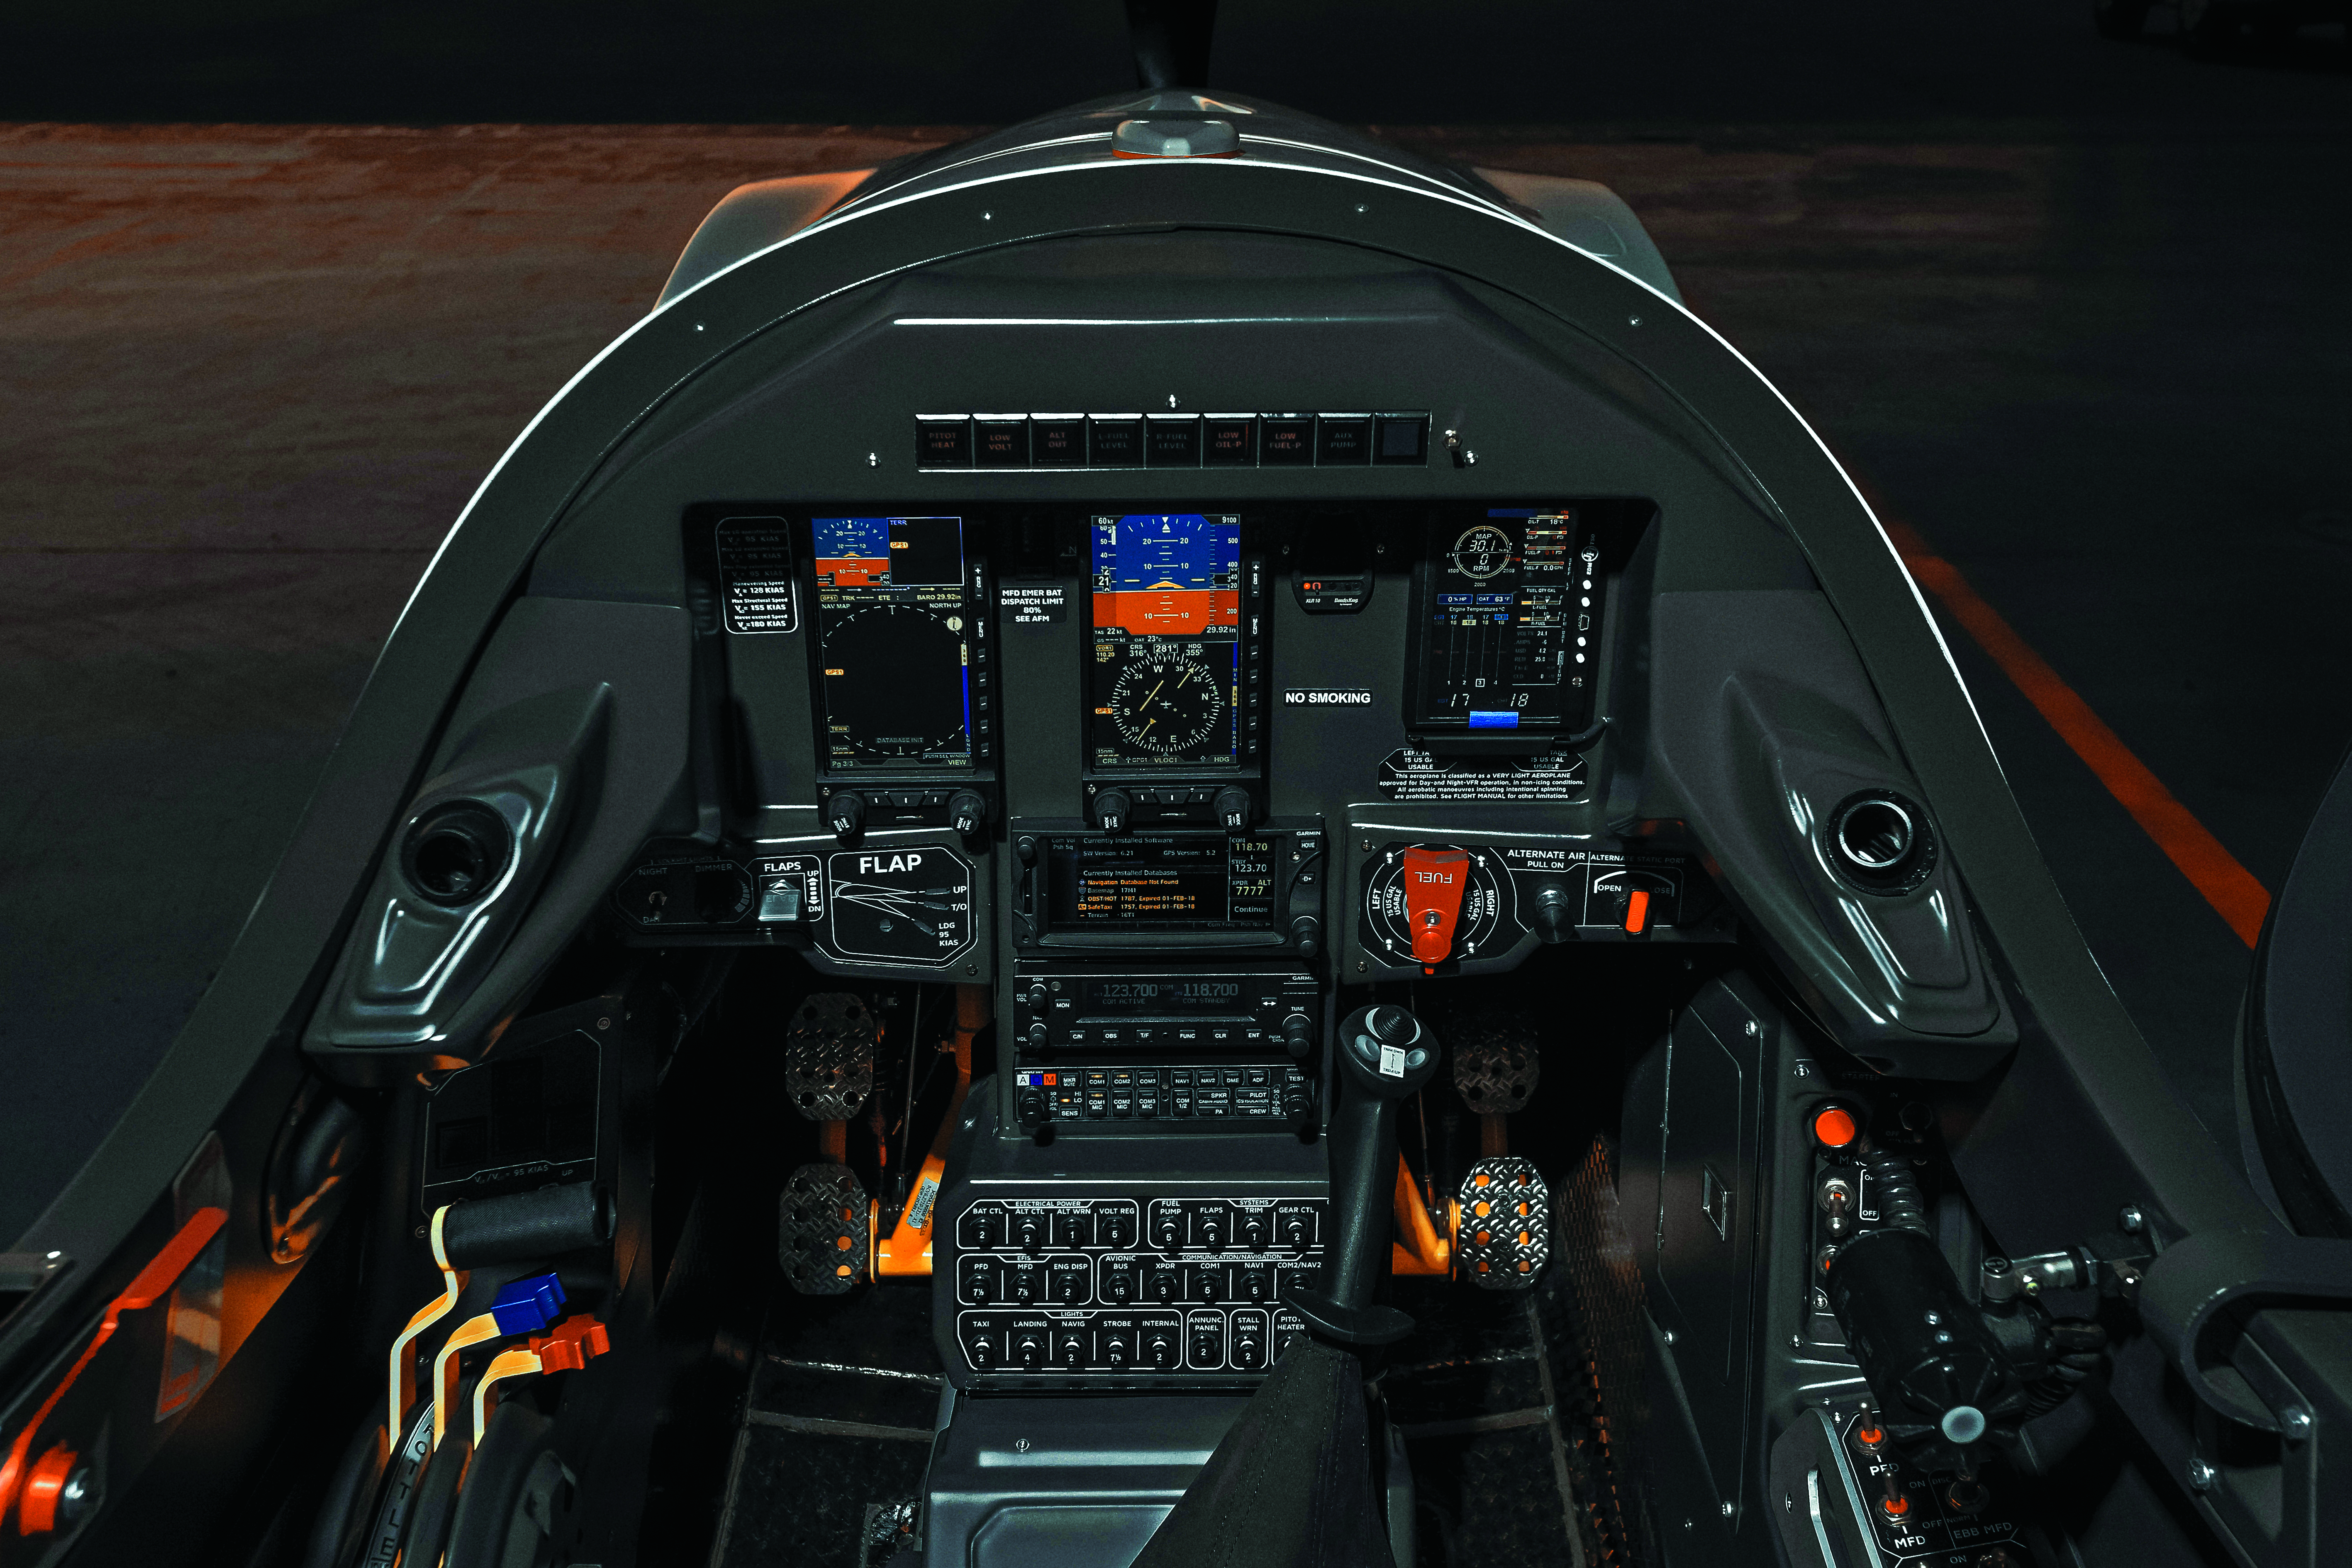 Blackshape_cockpit_2